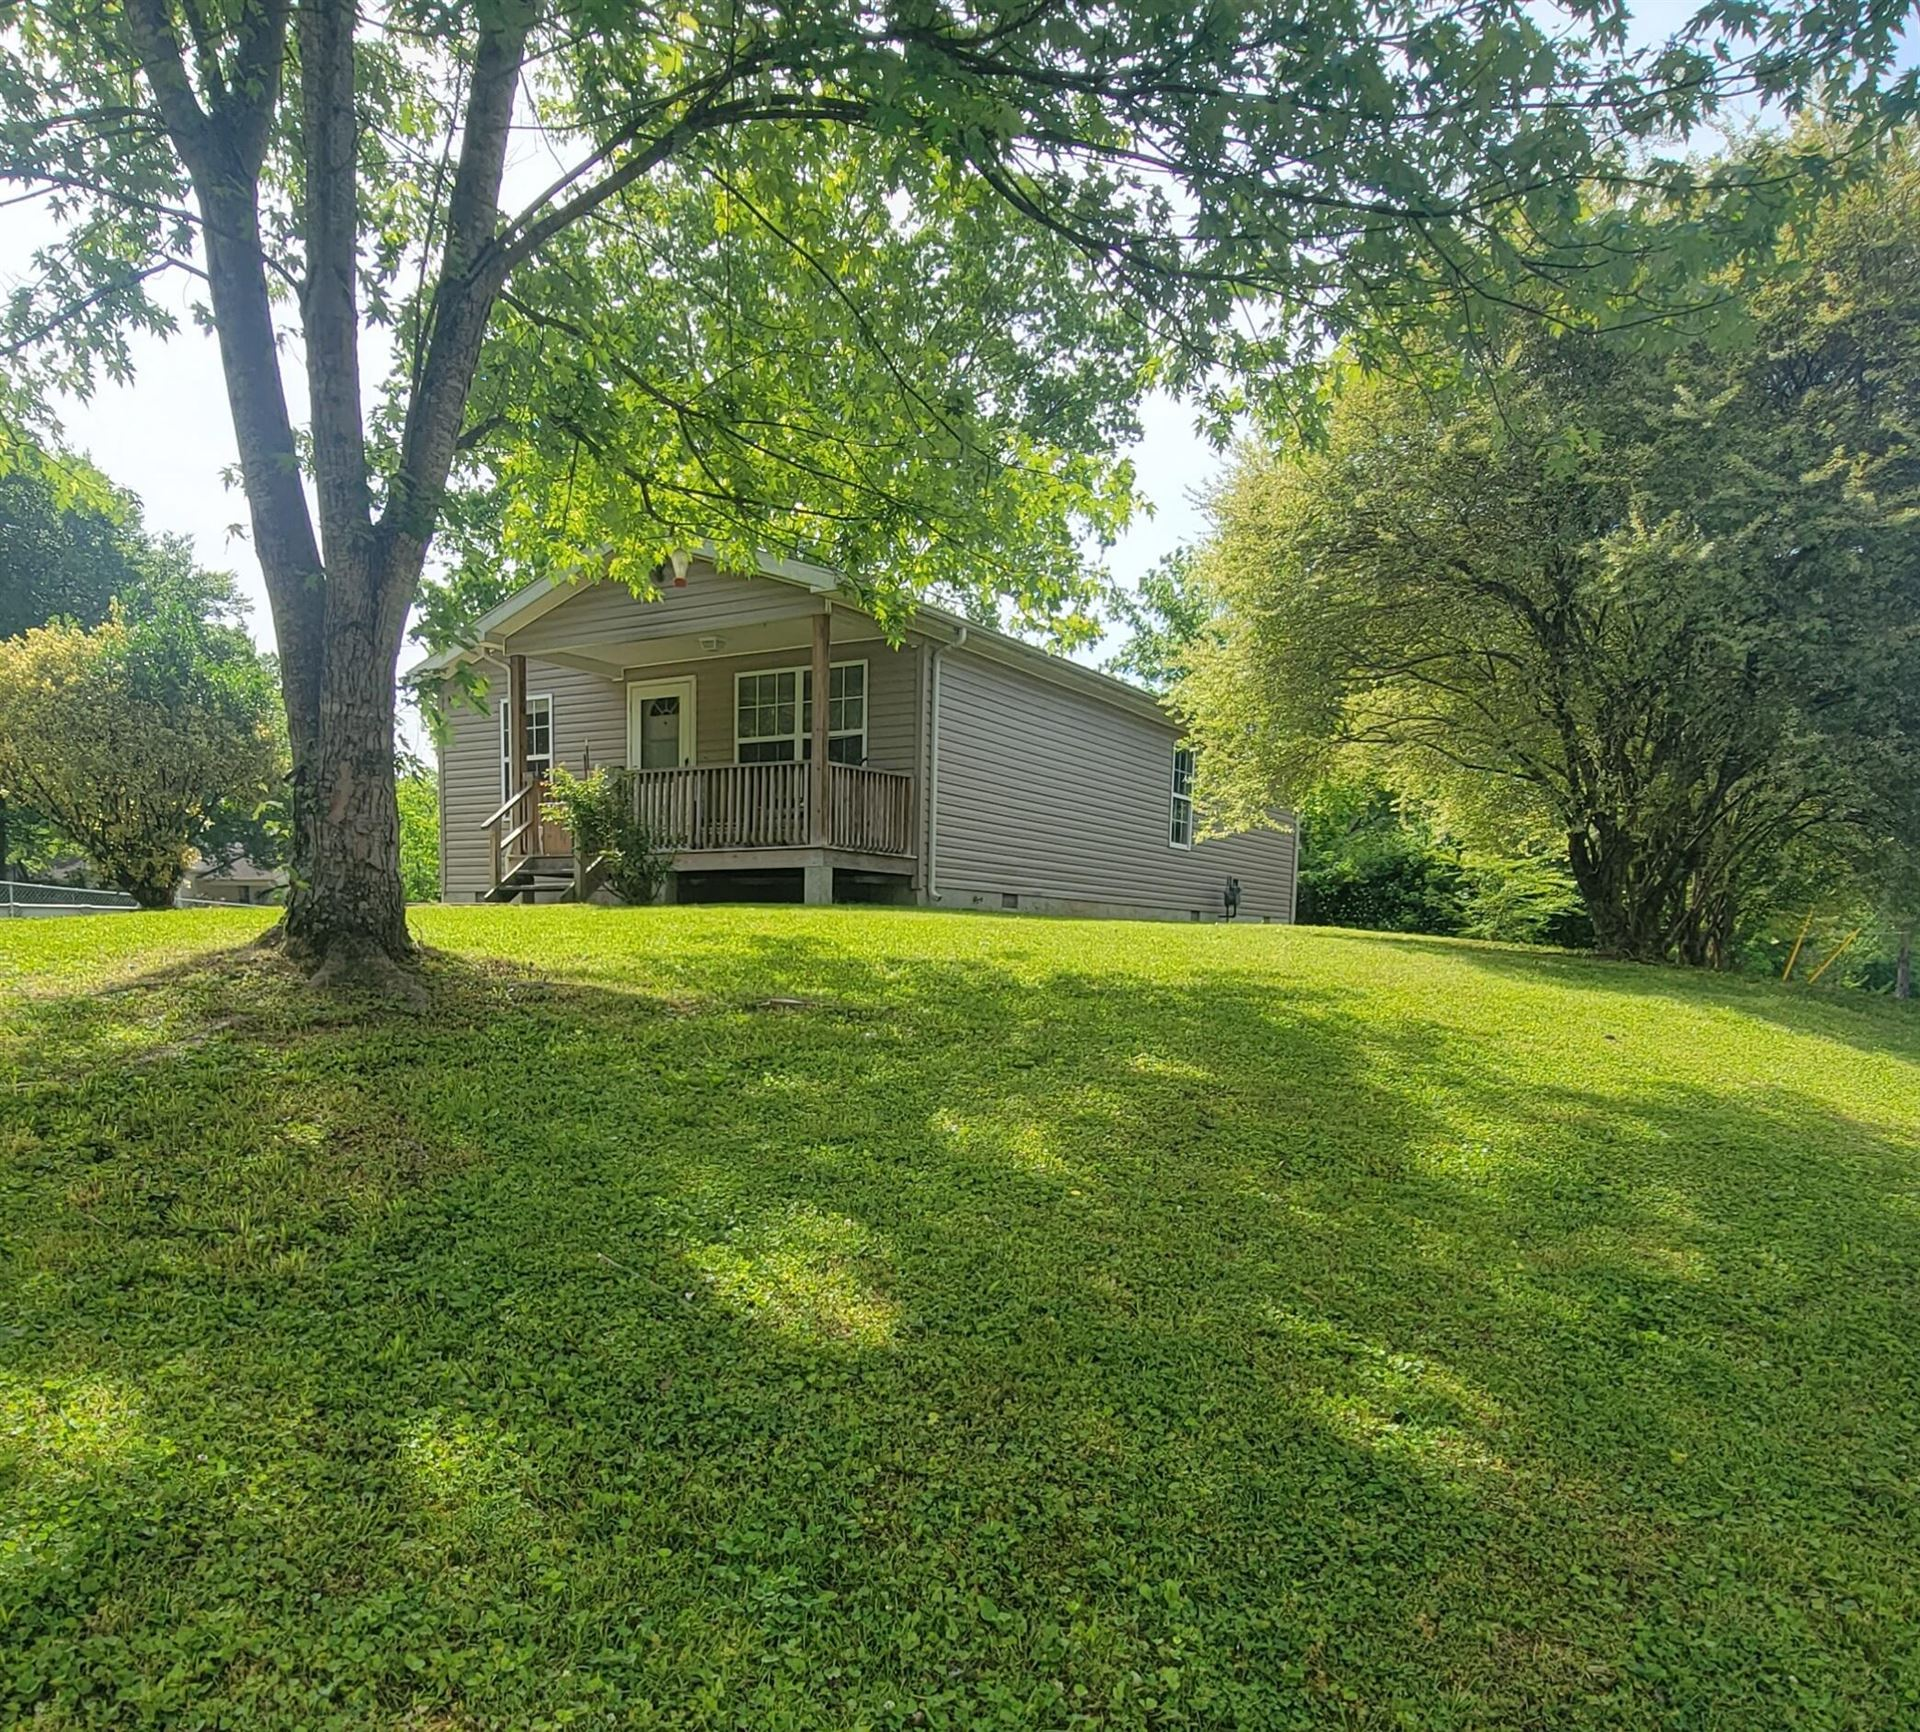 Photo of 160 Midway Drive, Oliver Springs, TN 37840 (MLS # 1152142)